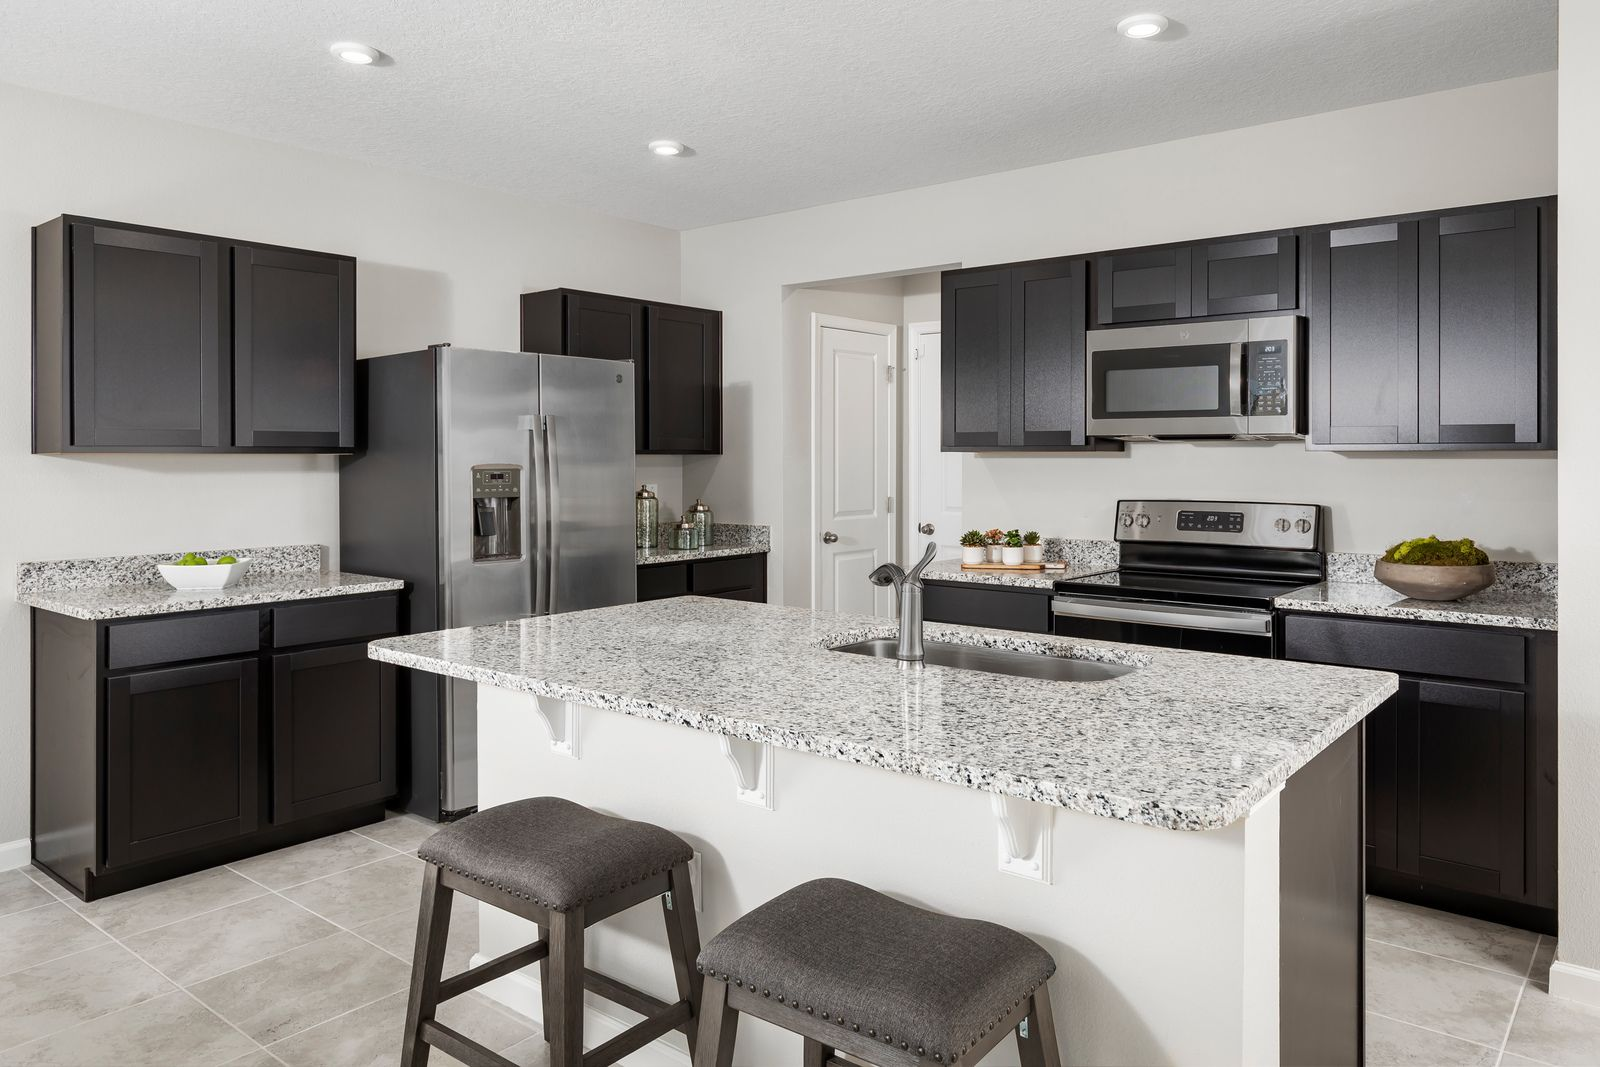 Kitchen featured in the Sweet Bay By Ryan Homes in Tampa-St. Petersburg, FL